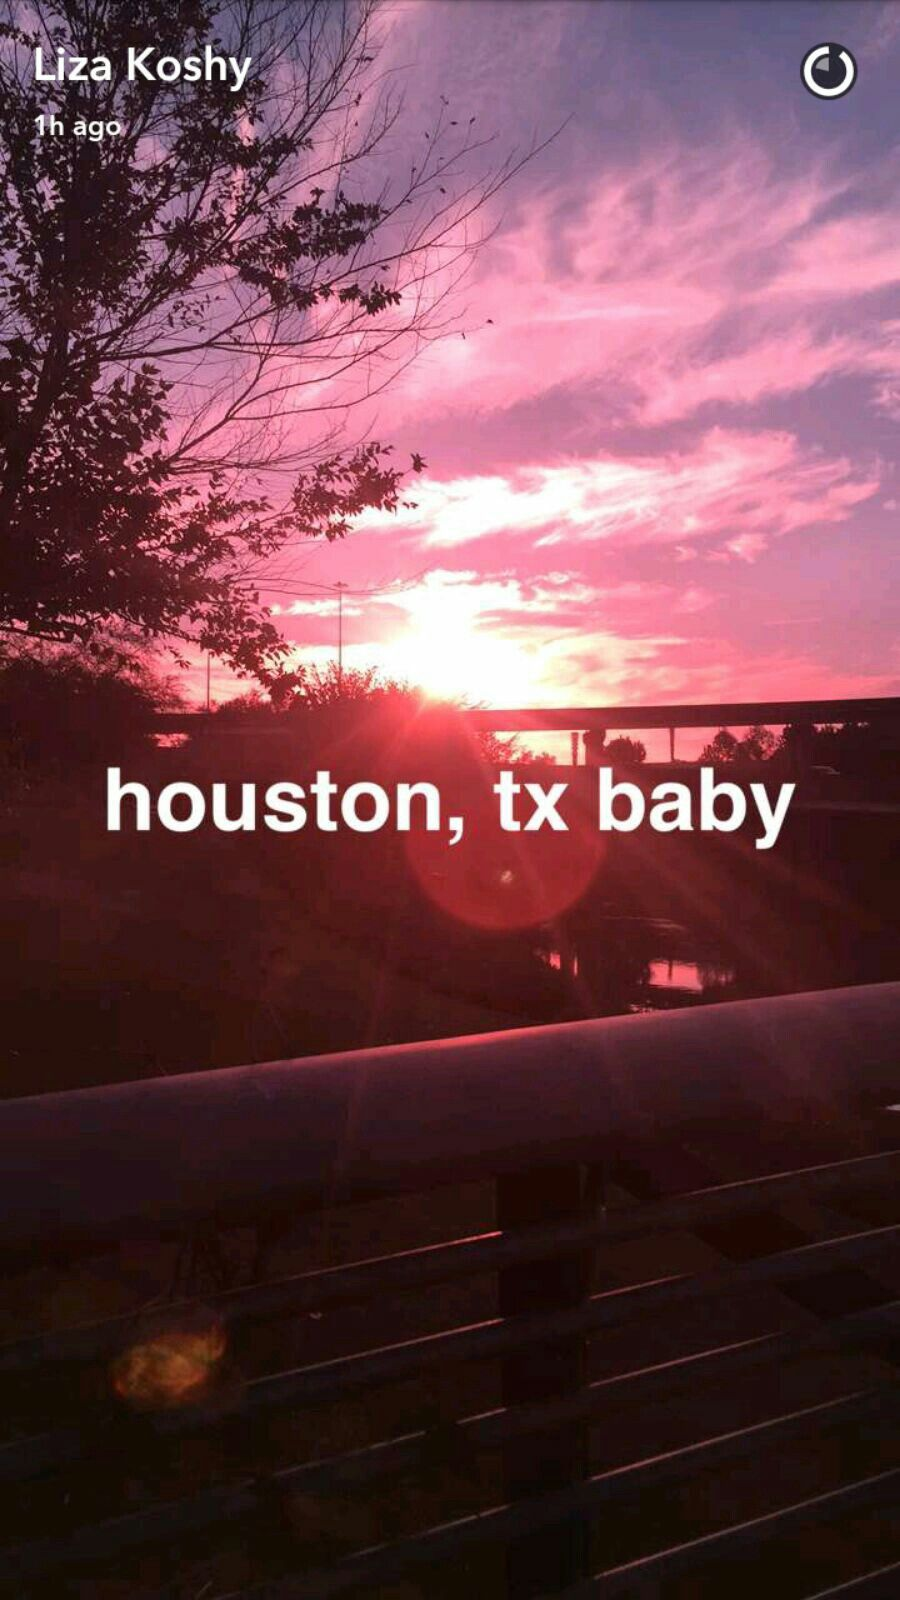 Houston Texas babyyy!! Like Beyoncé